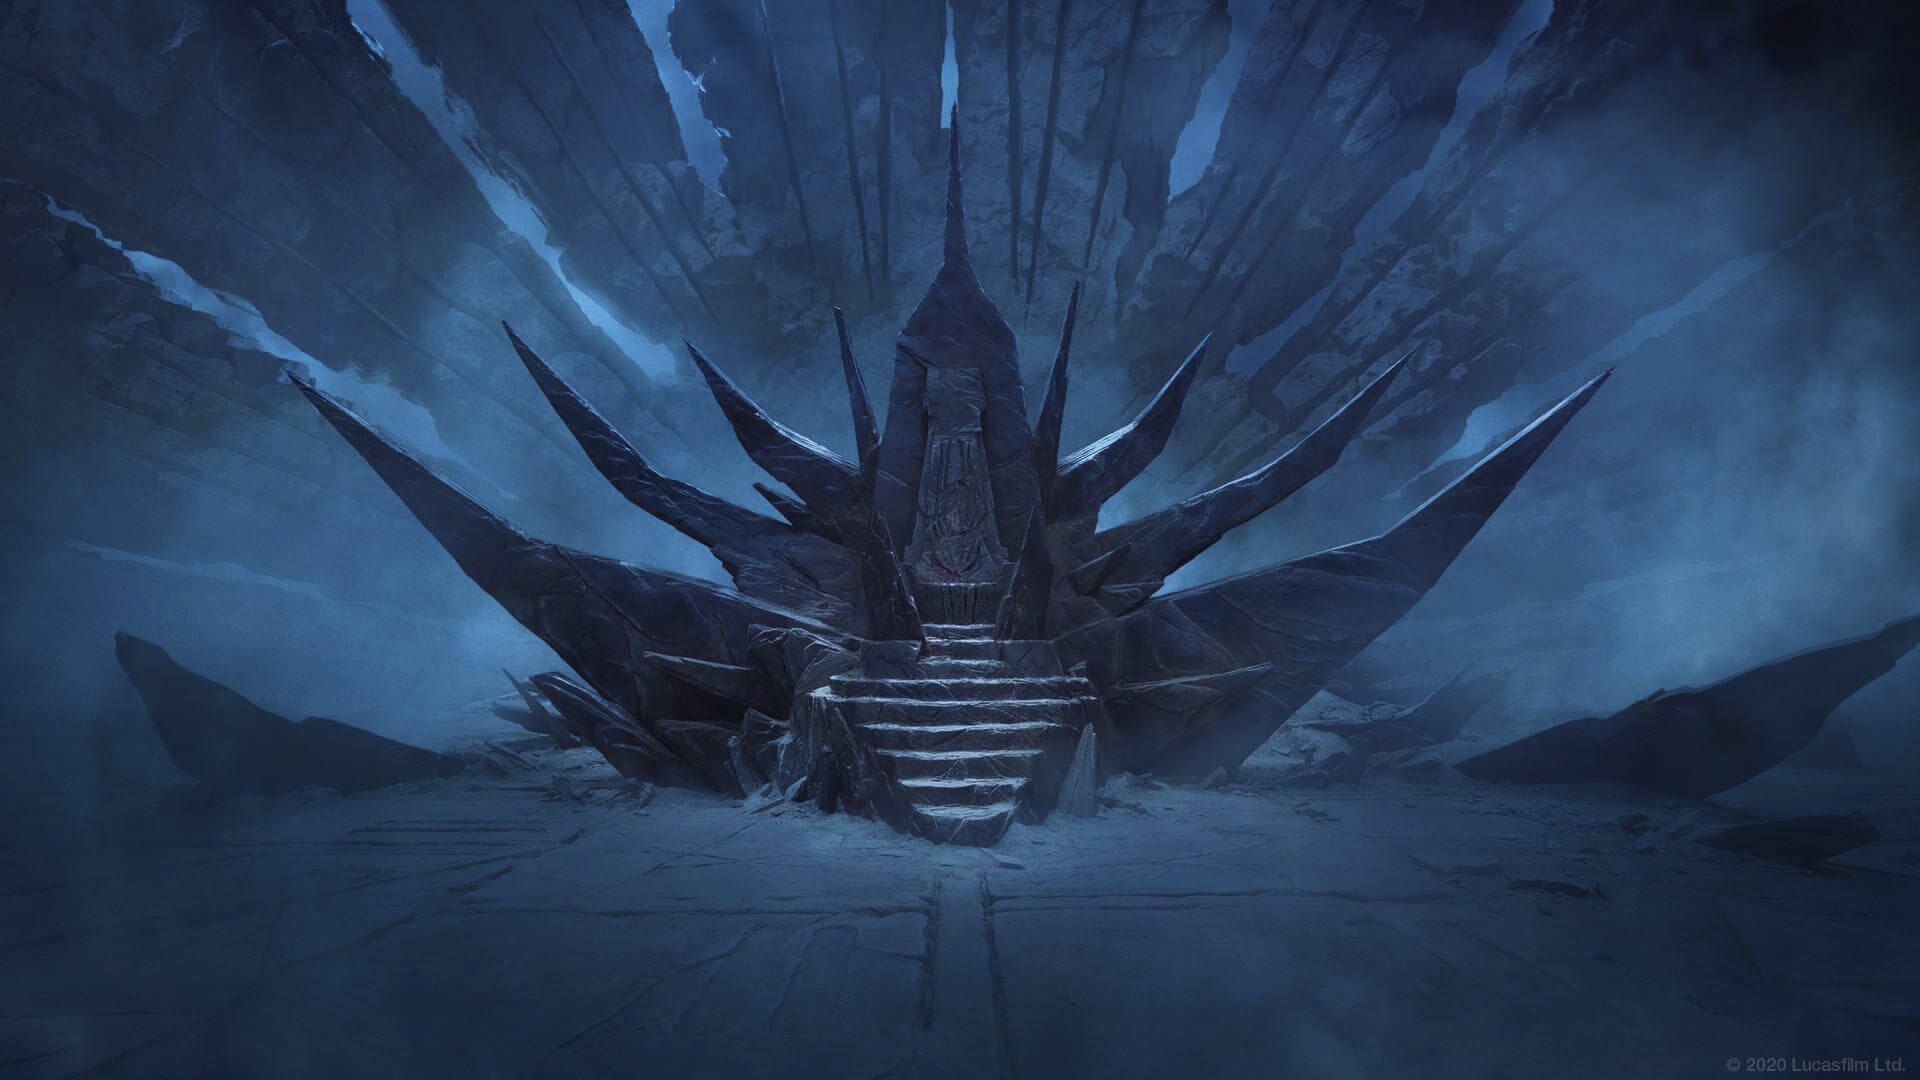 Background The Emperor S Throne On Exegol By Star Wars Wallpapers Wallpaperhub